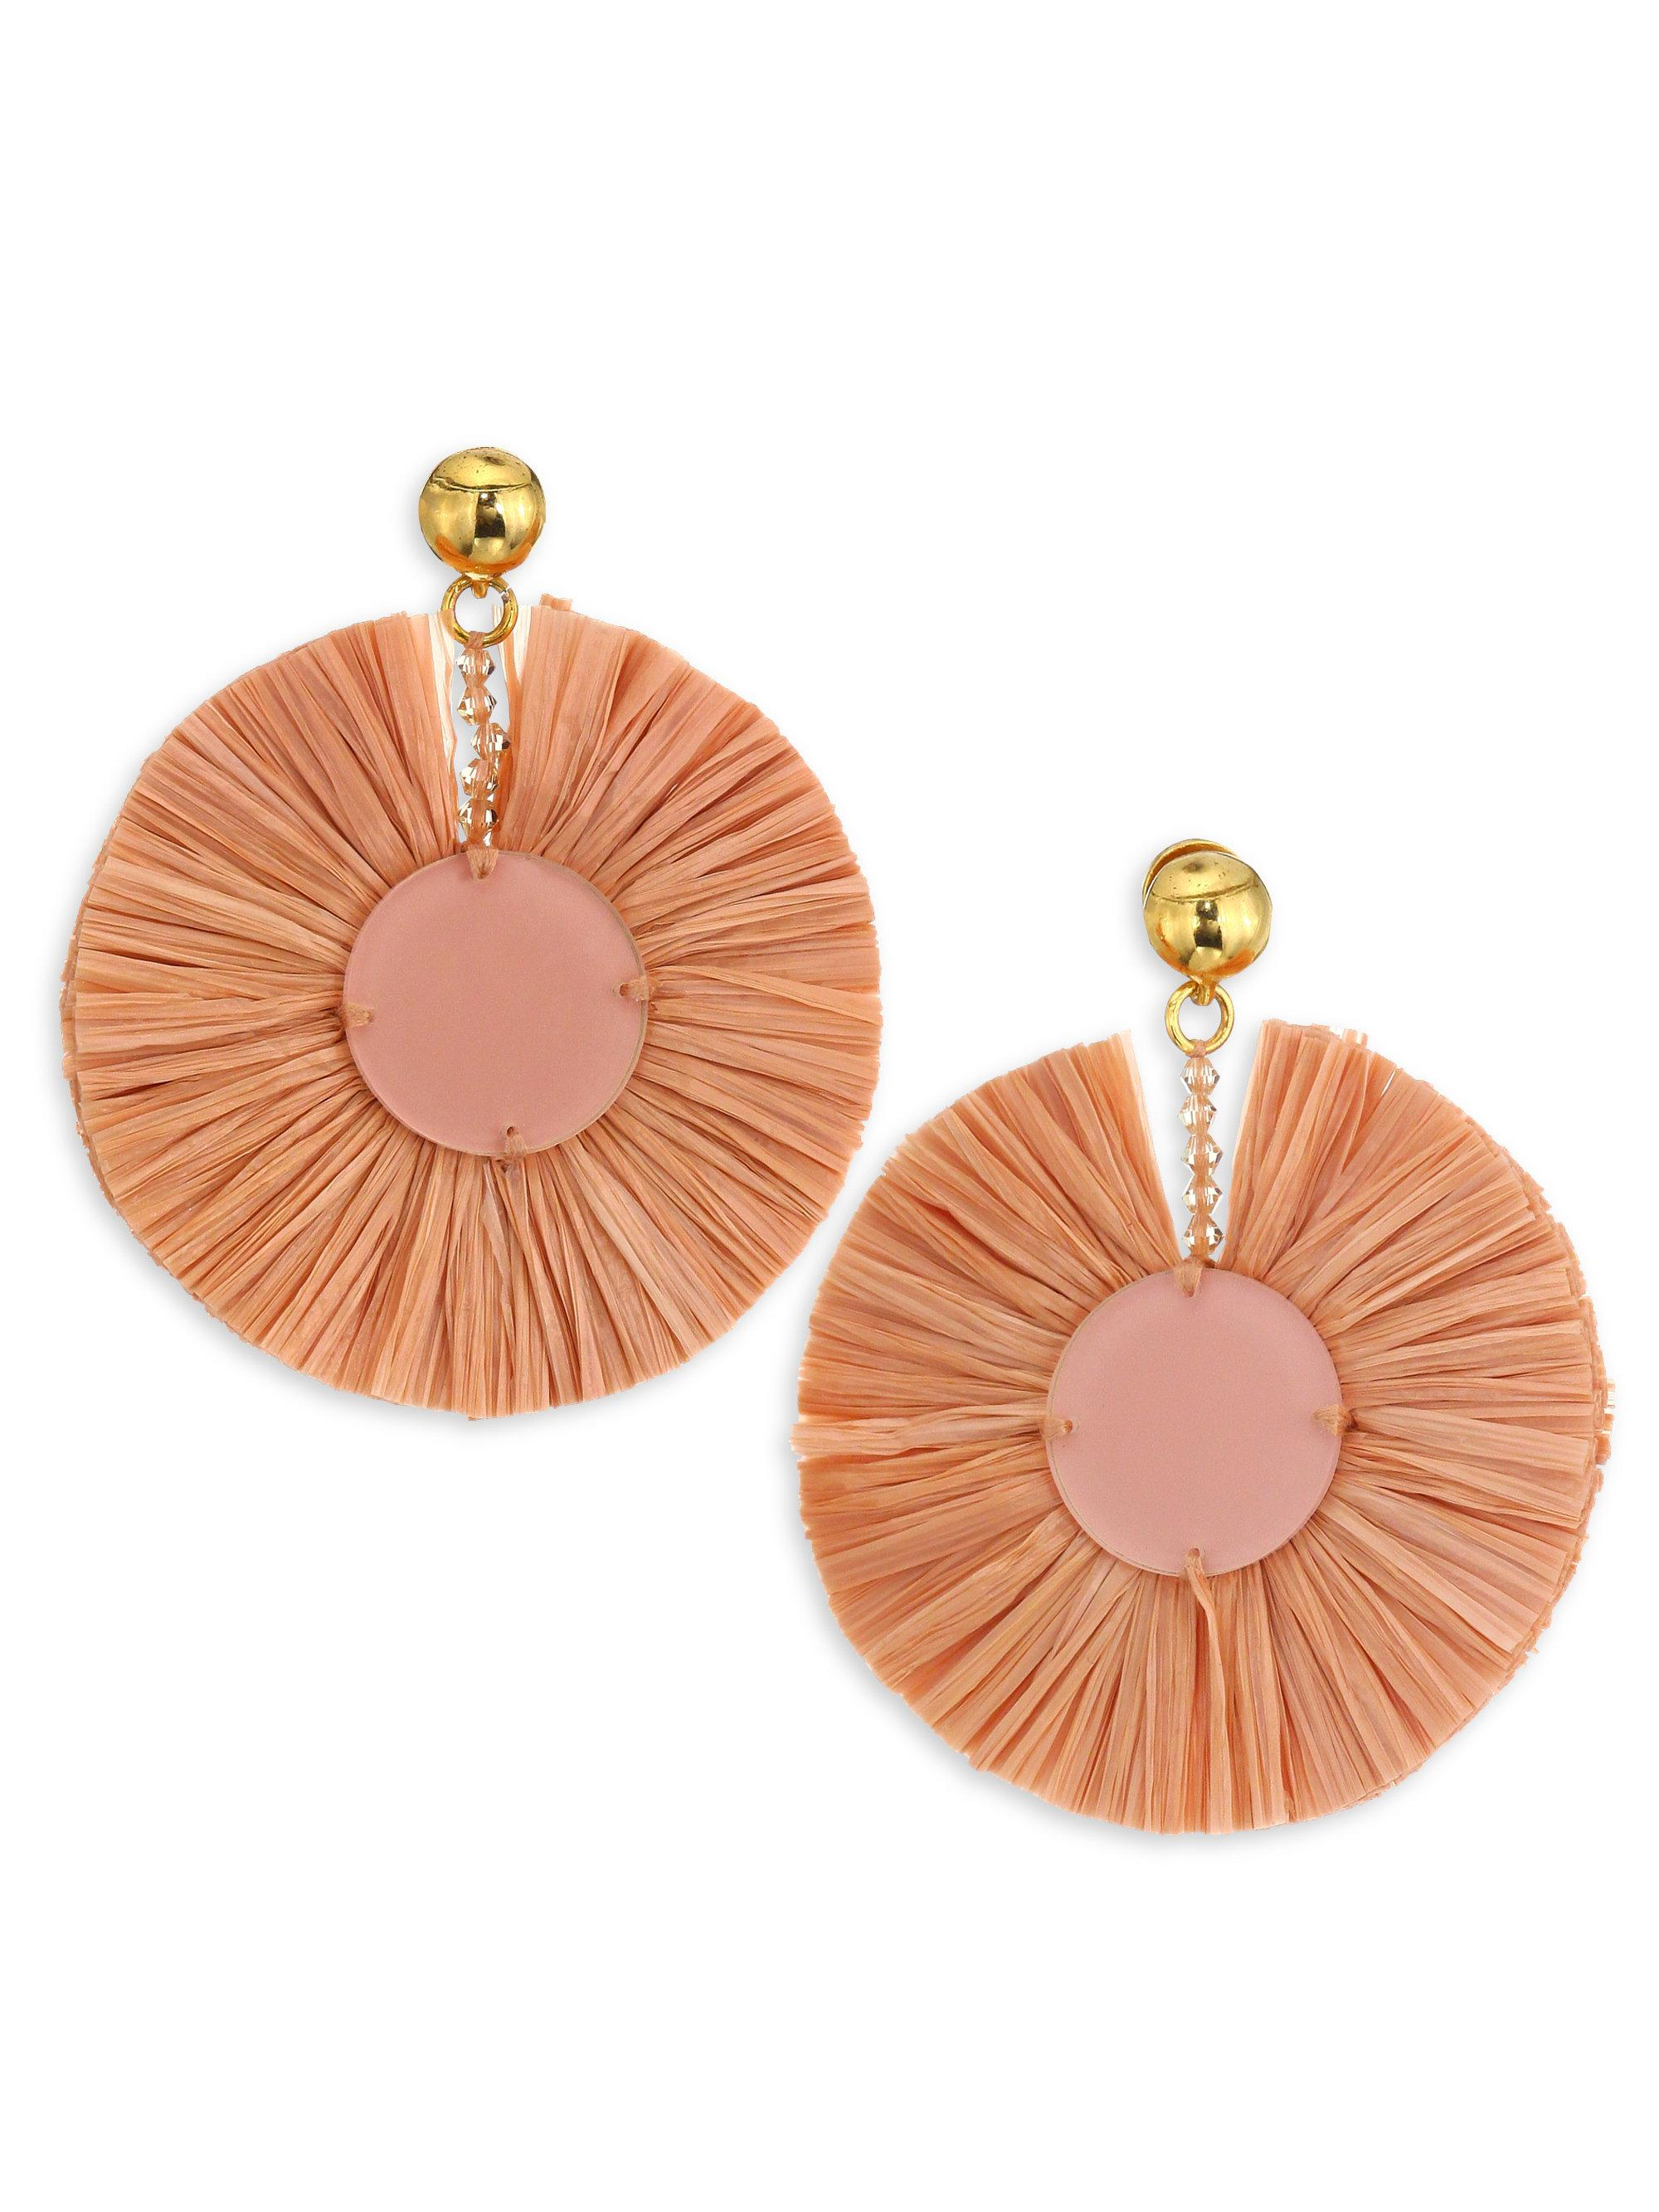 Disk earrings - Yellow & Orange Oscar De La Renta bcM5Kxl